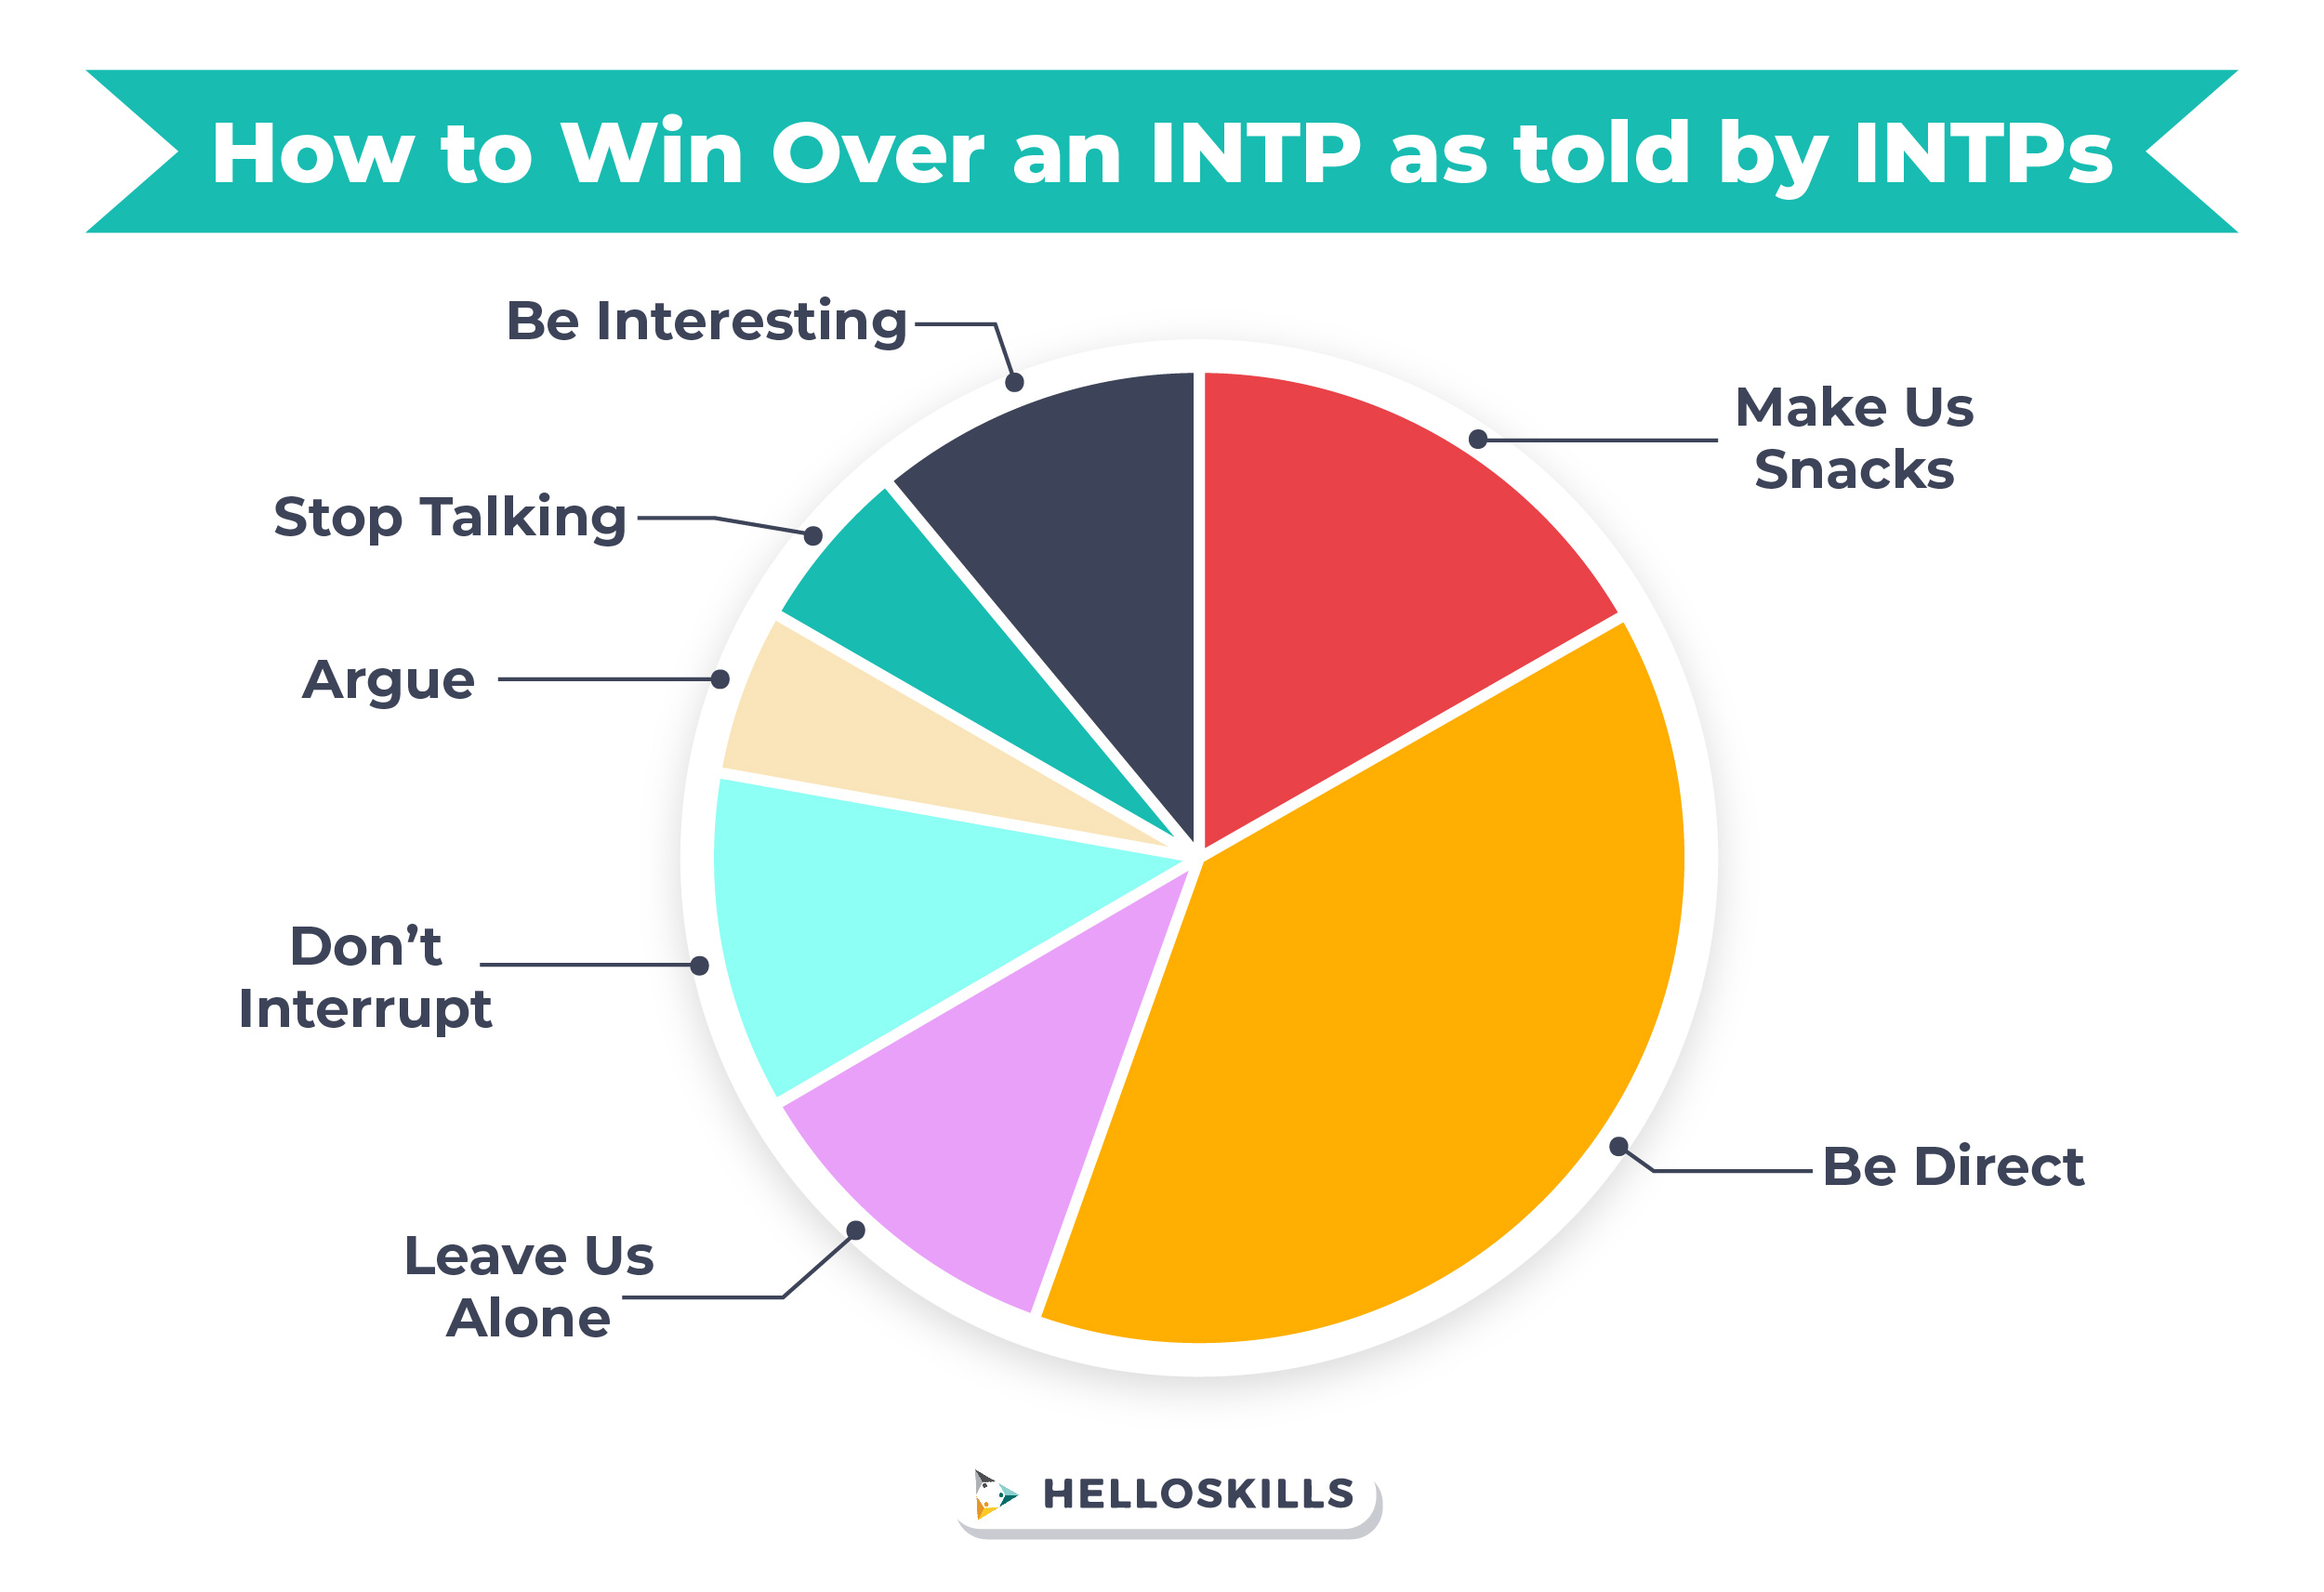 Win over INTP